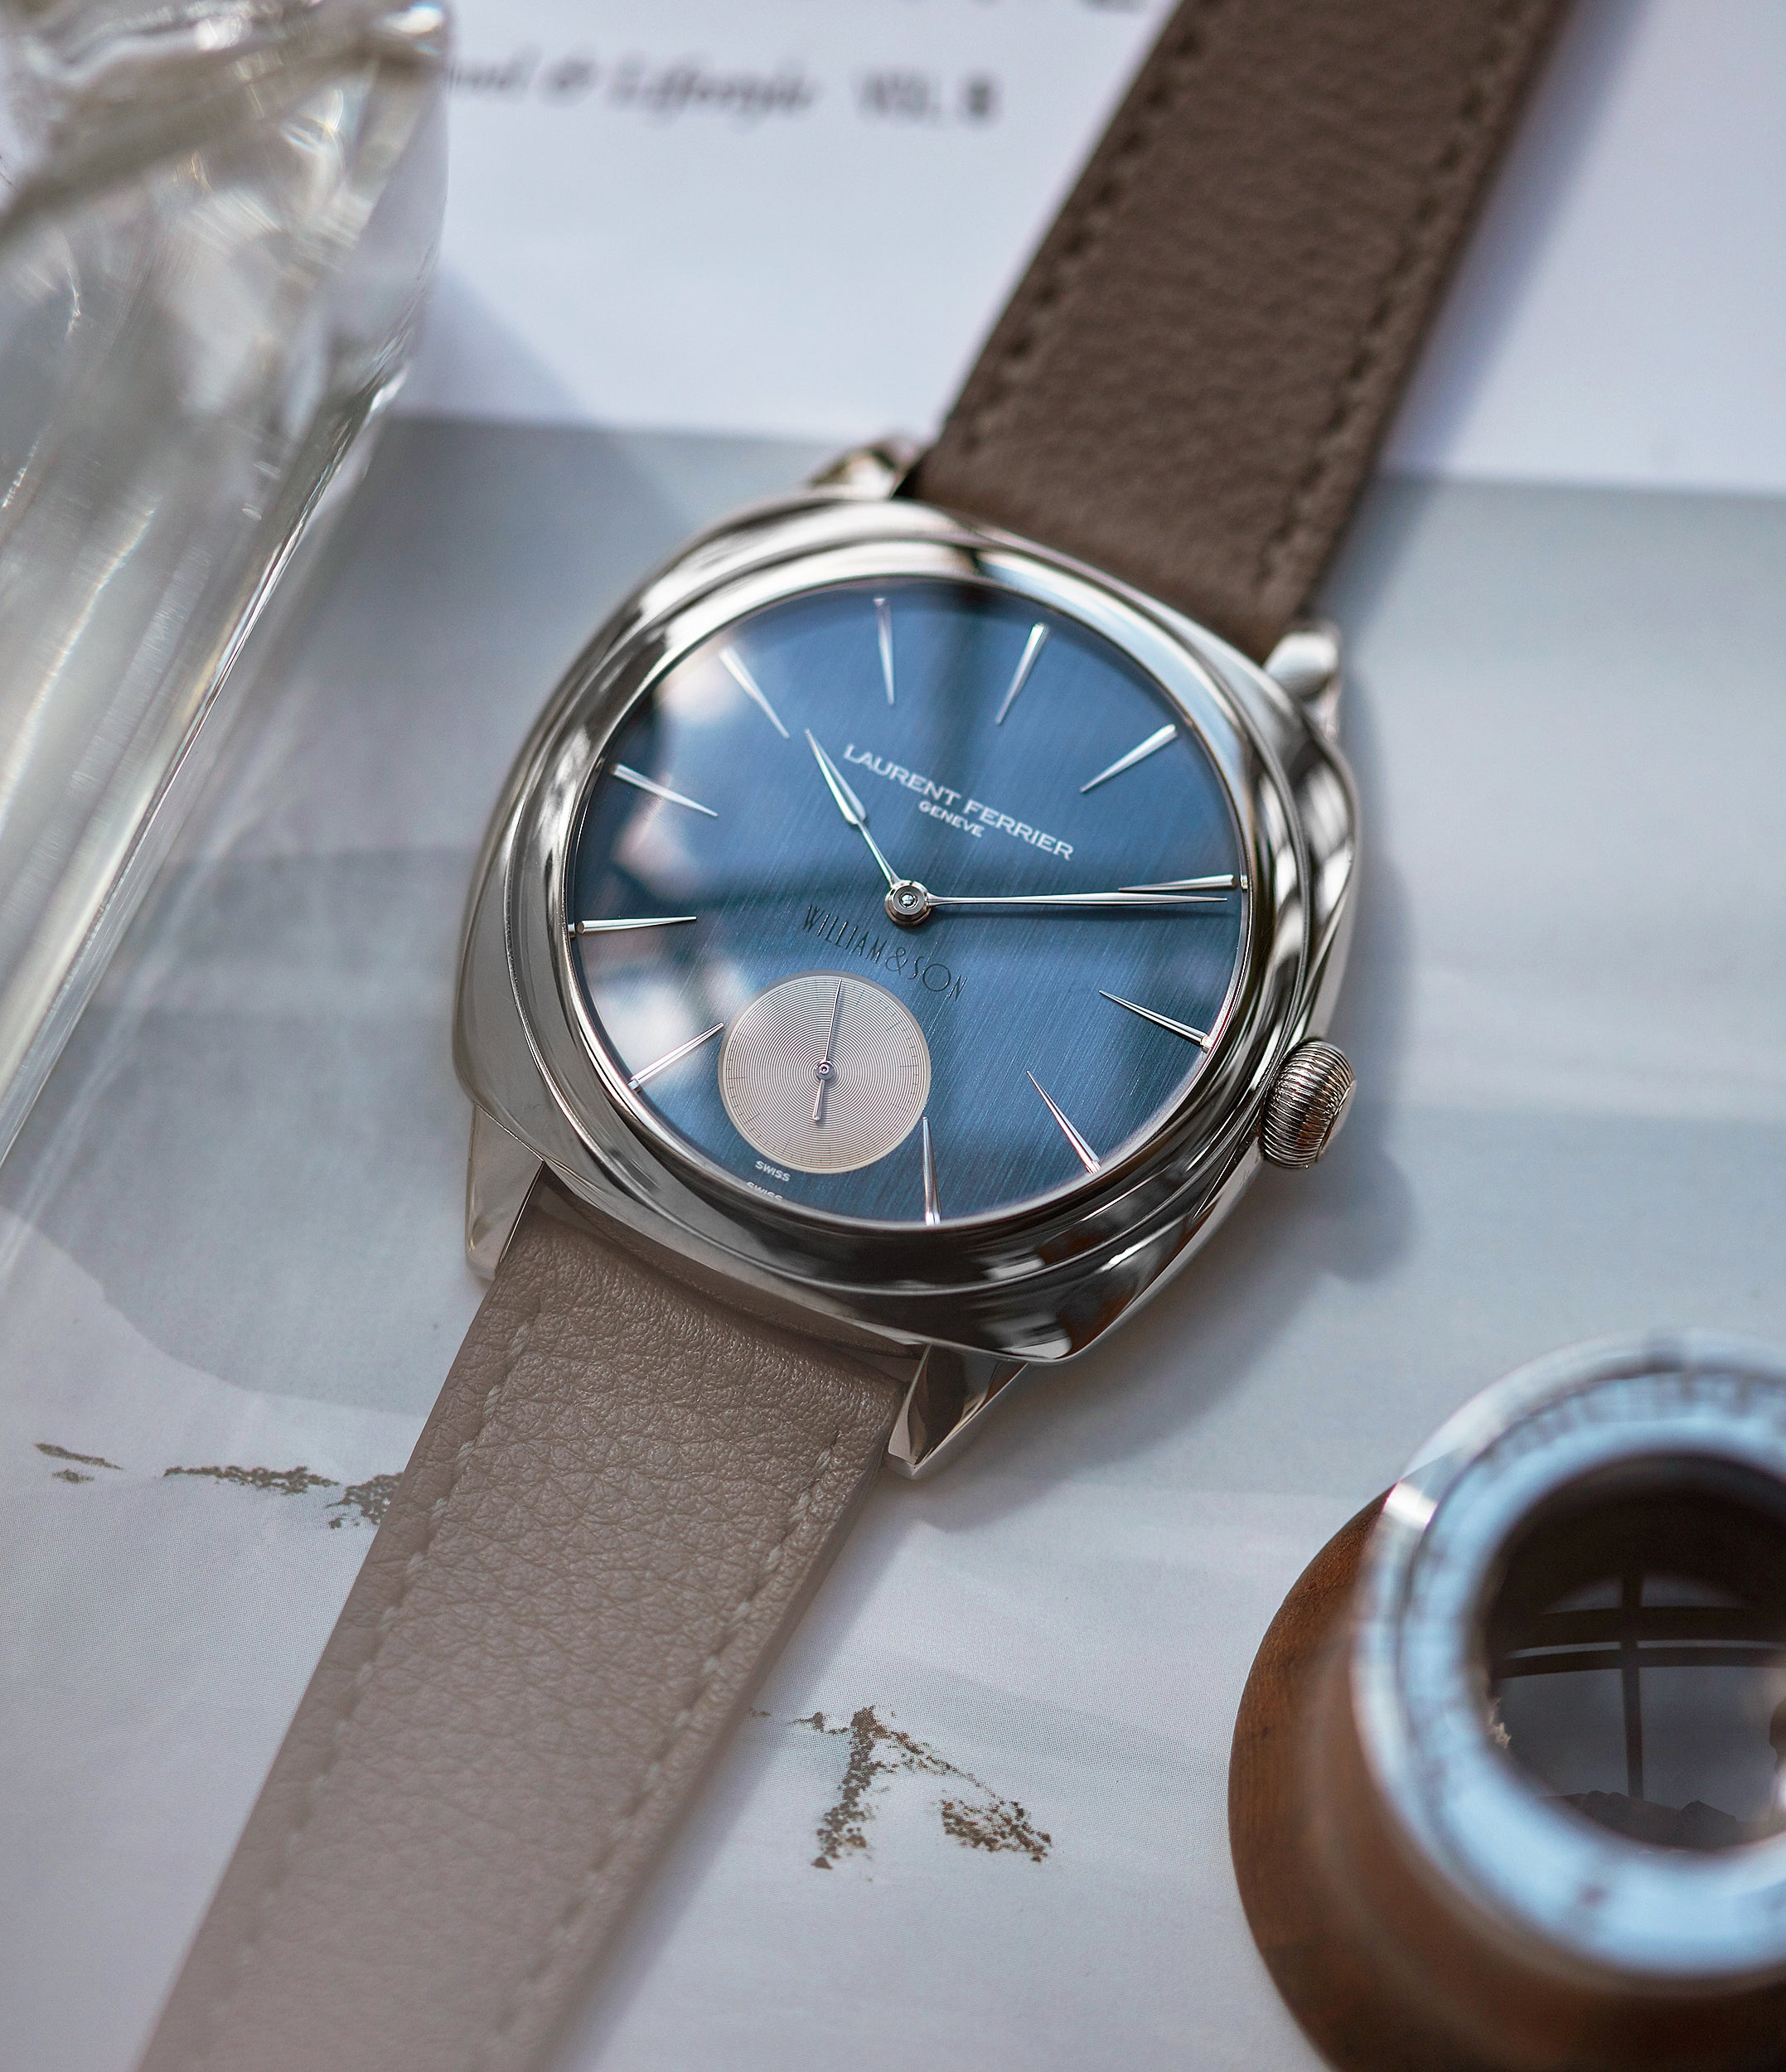 buy preowned Laurent Ferrier Micro Rotor LF 229.01 Galet Square William&Son blue dial white gold watch online at A Collected Man London approved seller of preowned independent watchmakers